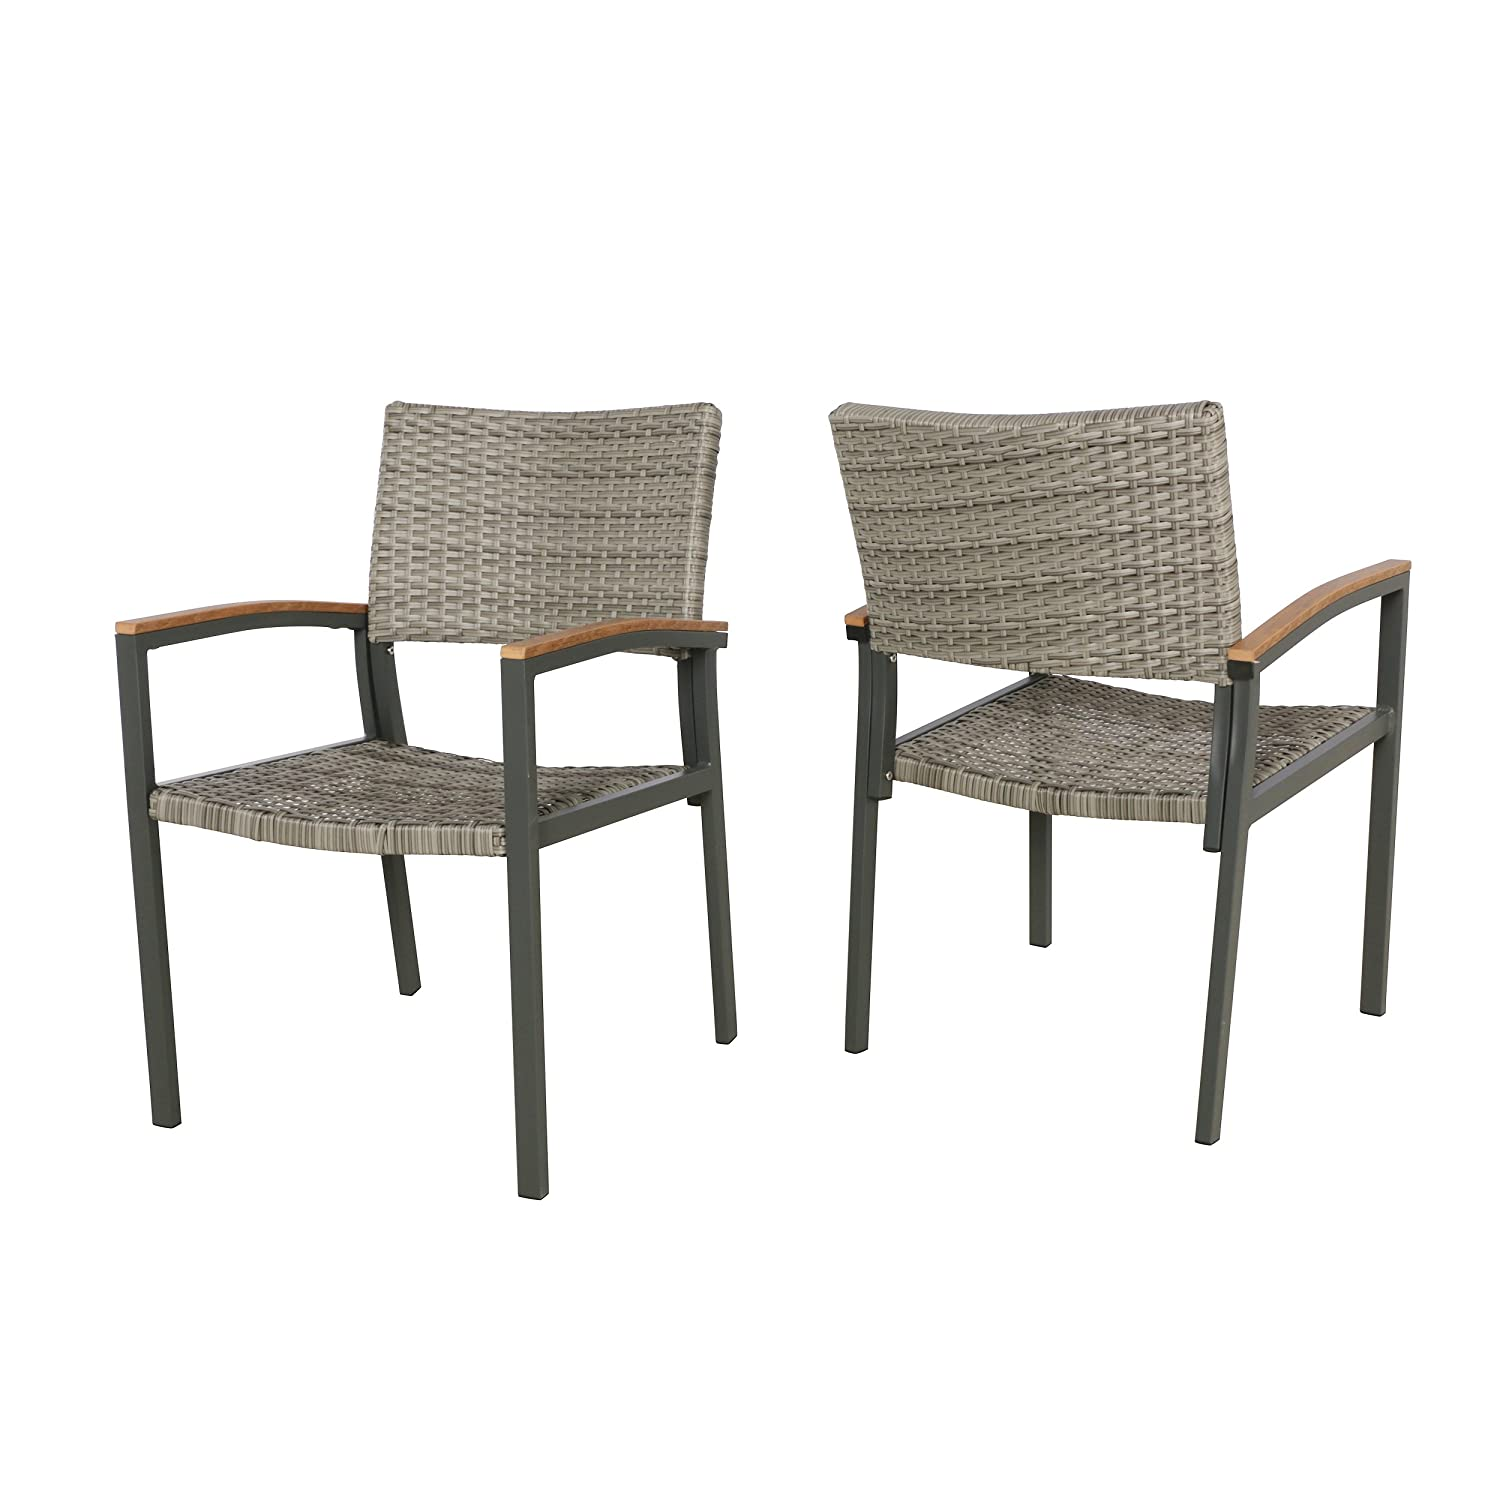 Amazon com great deal furniture emma outdoor wicker dining chair with aluminum frame set of 2 gray garden outdoor